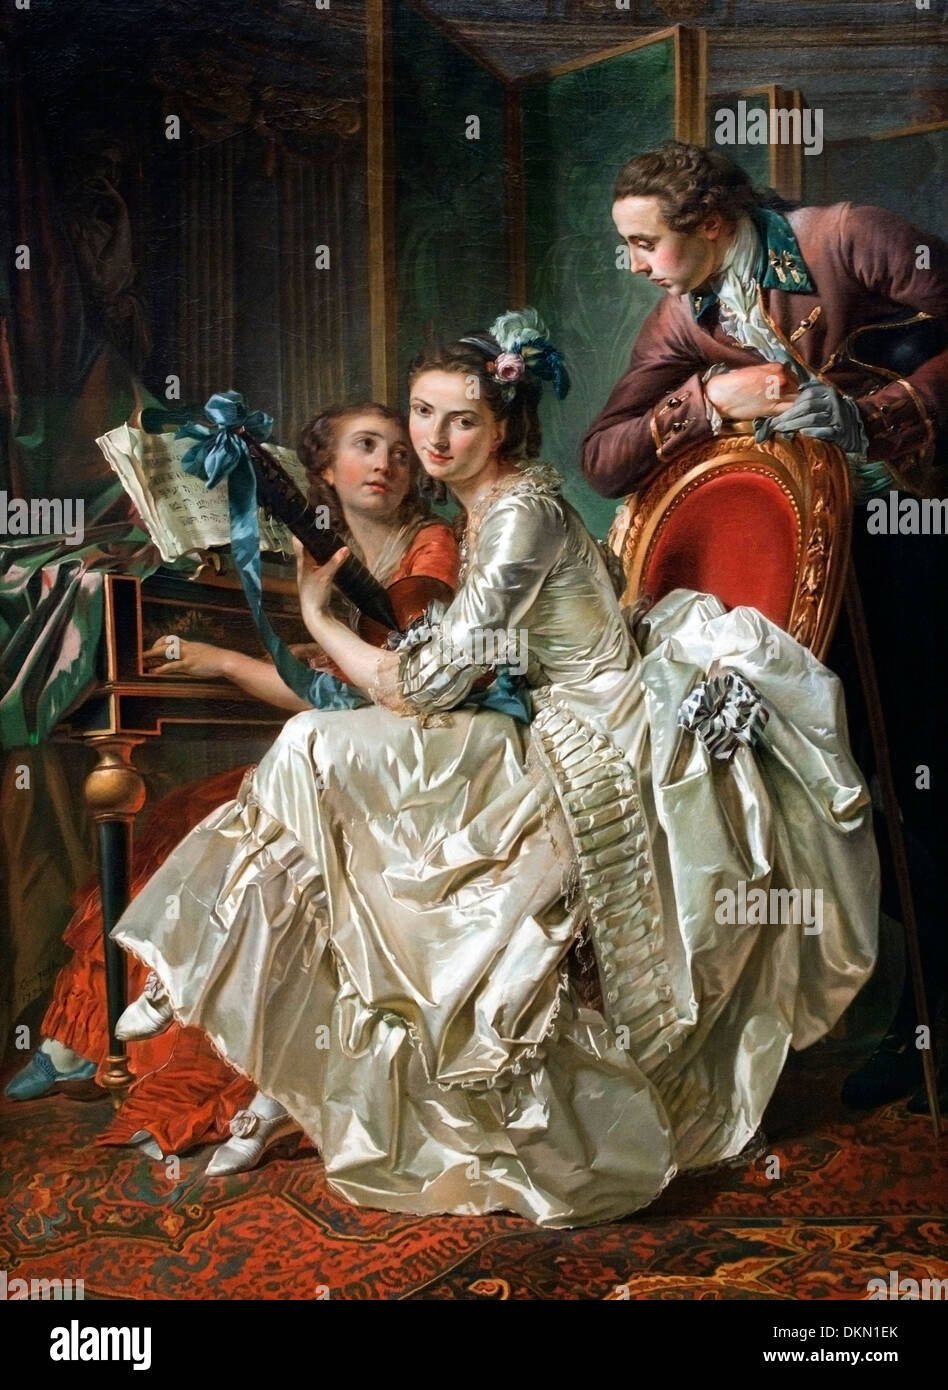 Gallant society by Louis Rolland Trinquesse (c.1745-1800)  France French - Stock Image